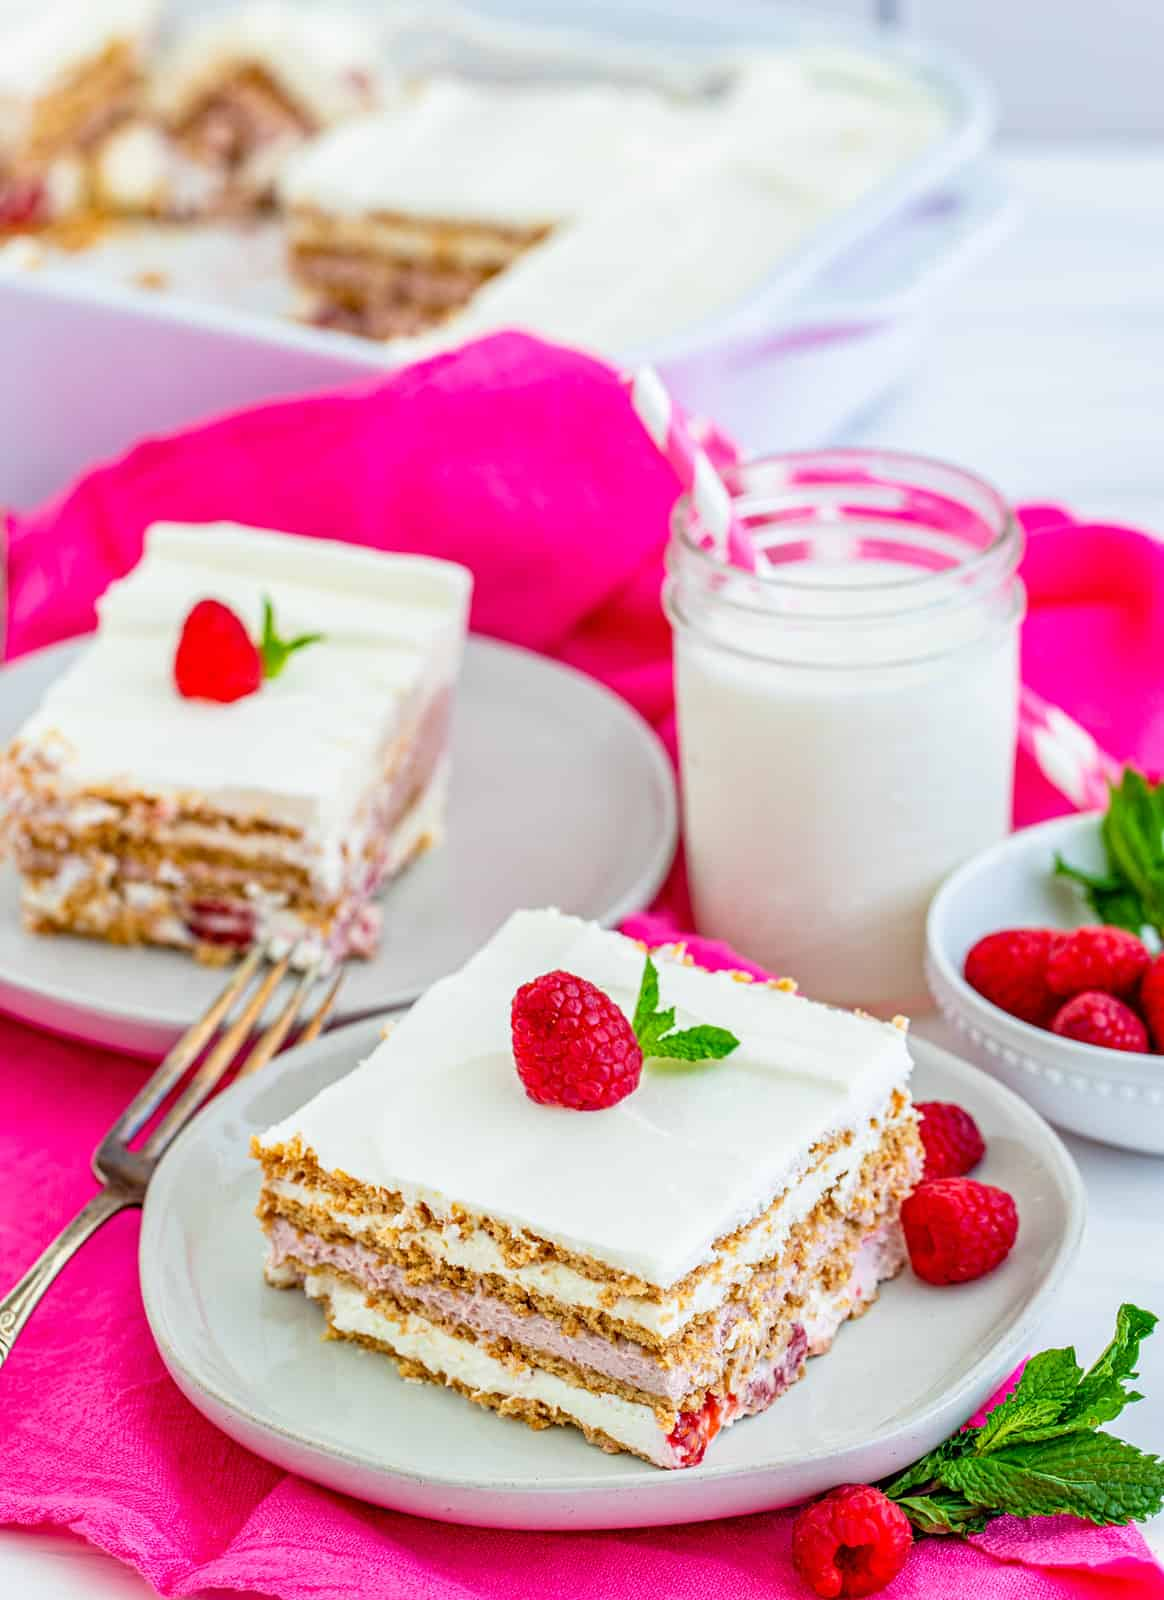 Two slices of cake on white plates topped with raspberries